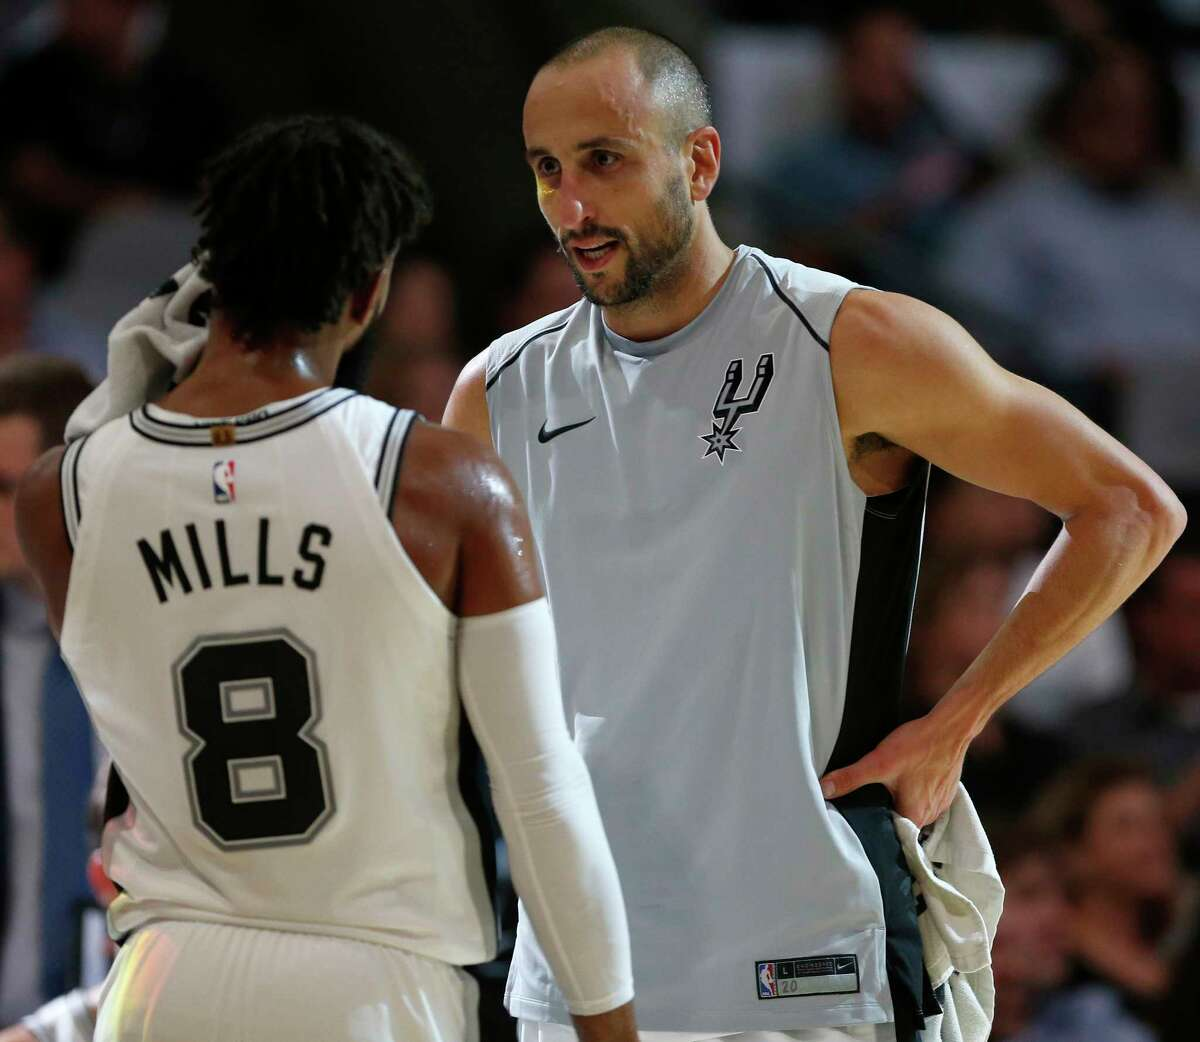 Spurs legend Manu Ginobili congratulated former teammate Patty Mills for beating his three-pointer record on Monday.